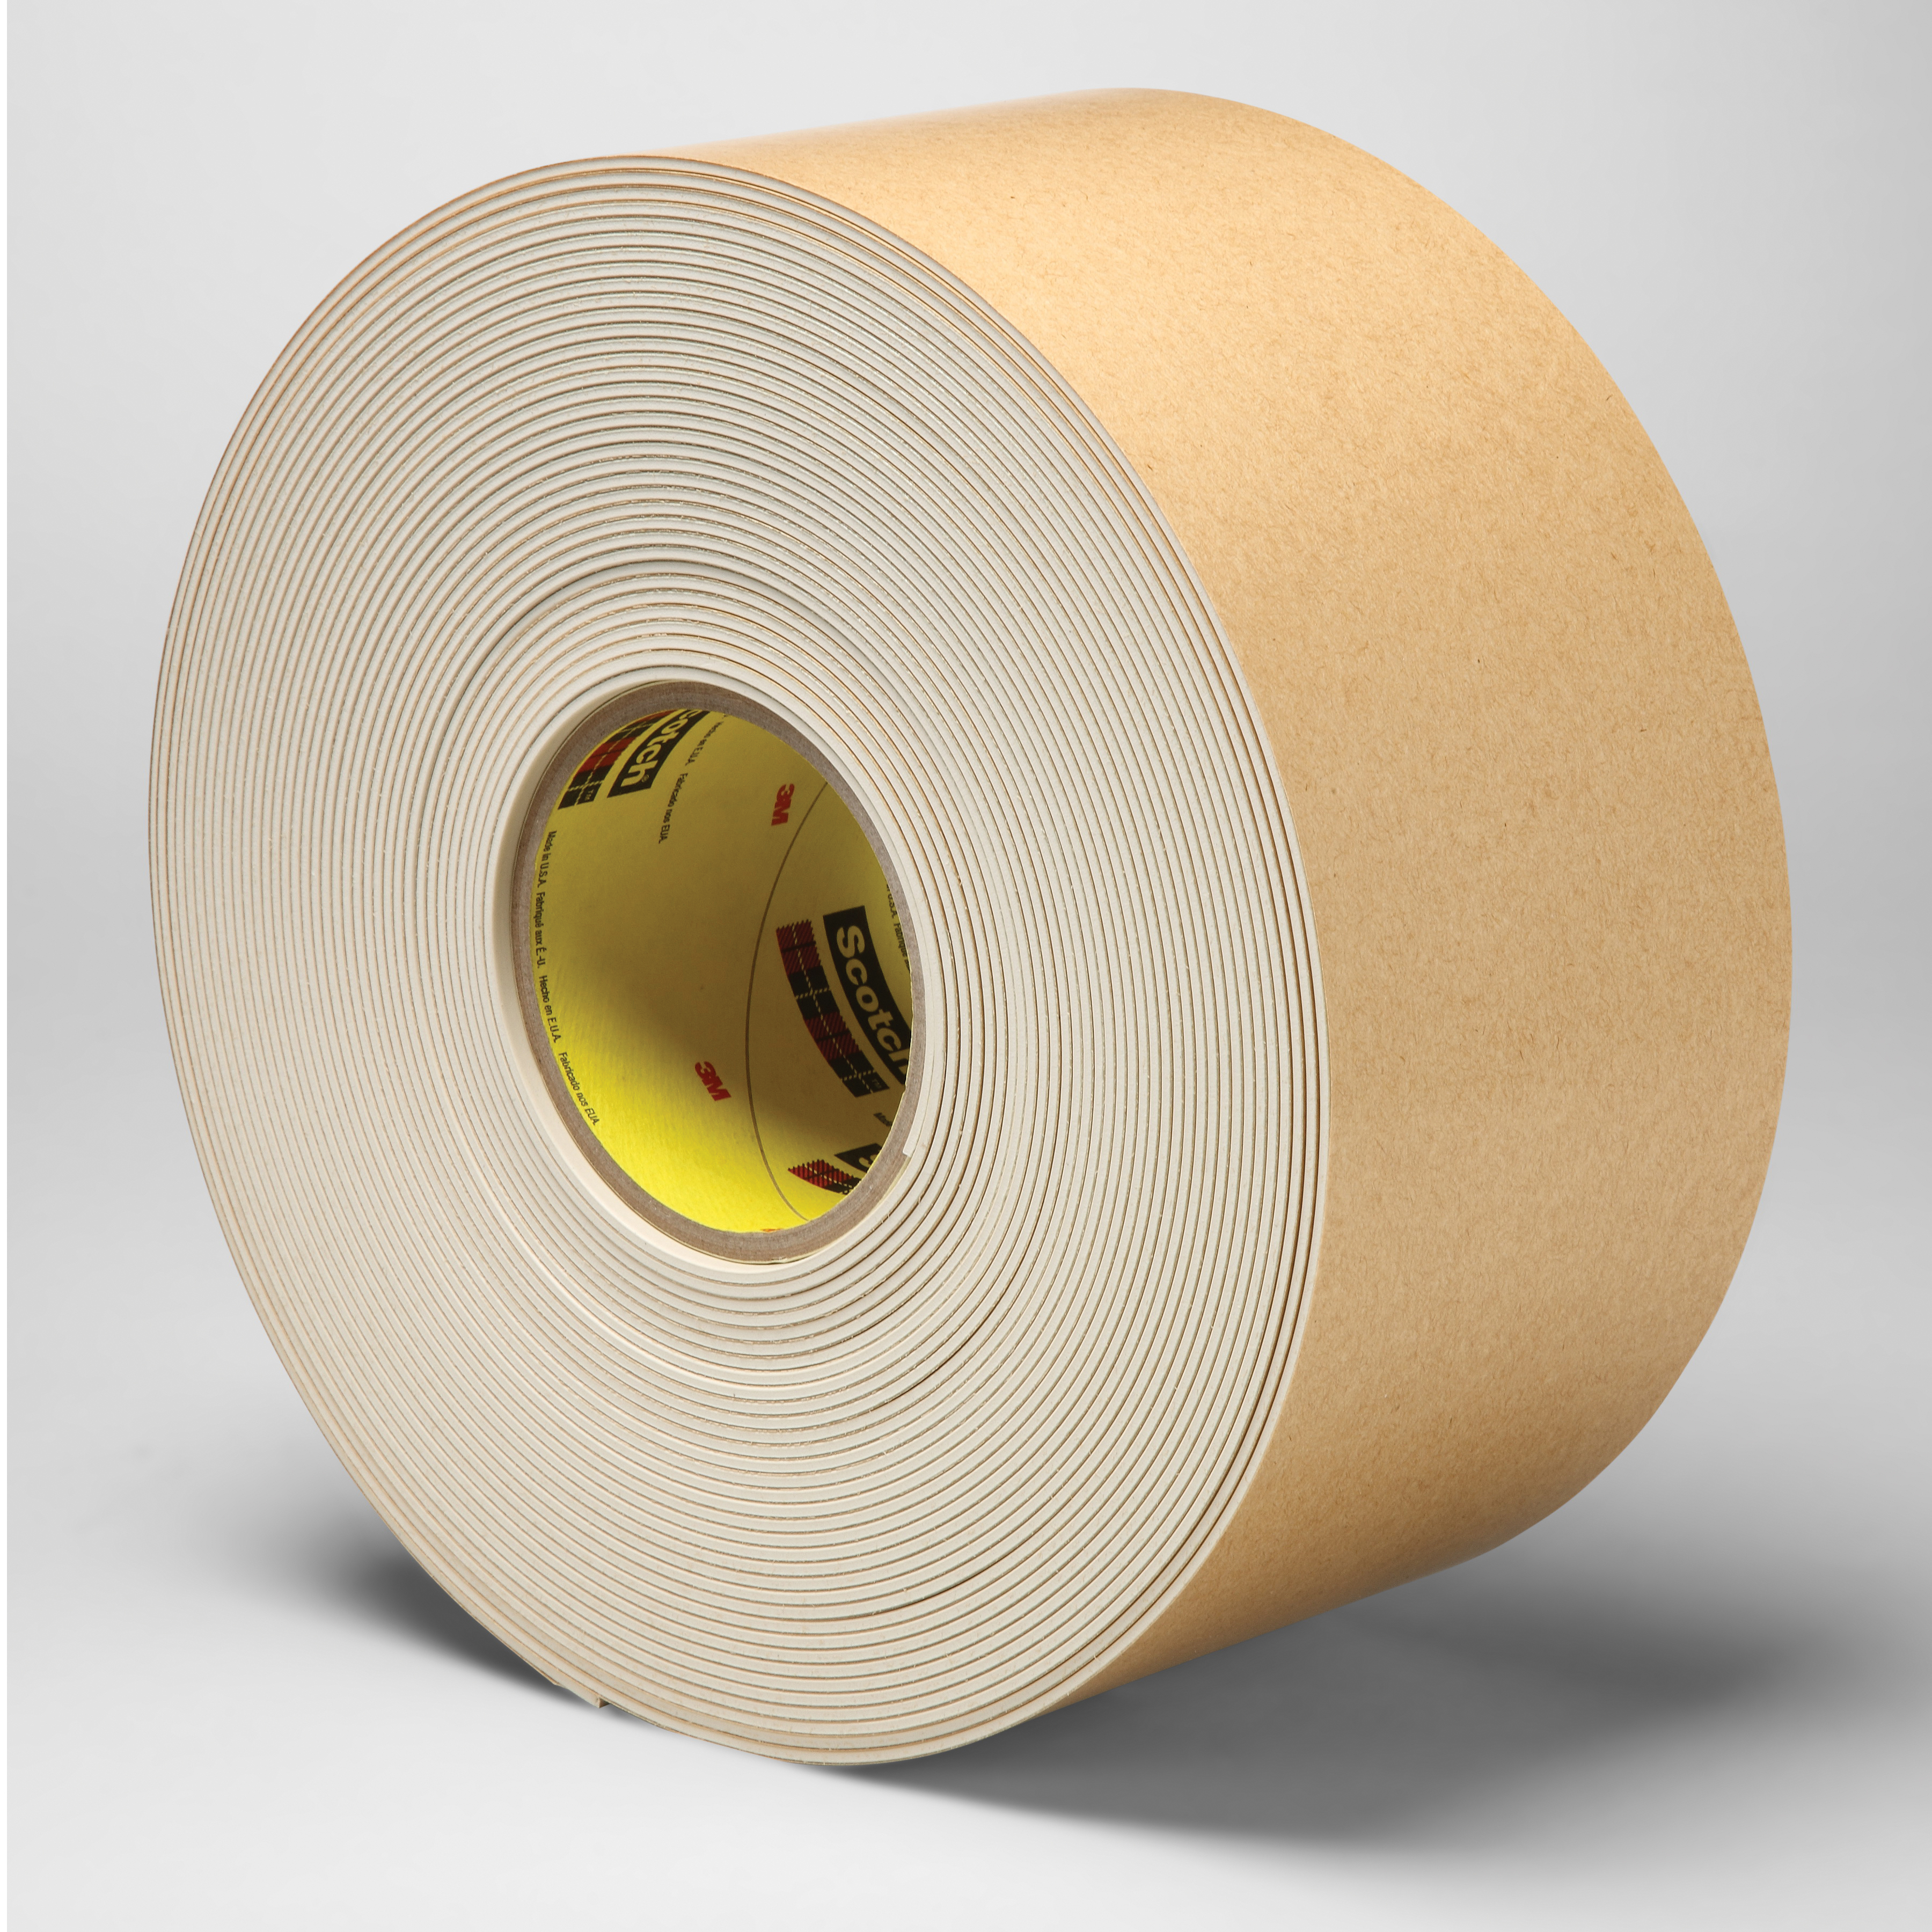 3M™ 021200-48162 Impact Stripping Tape, 20 yd L x 6 in W, 82 mil THK, Acrylic Adhesive, Rubber Backing